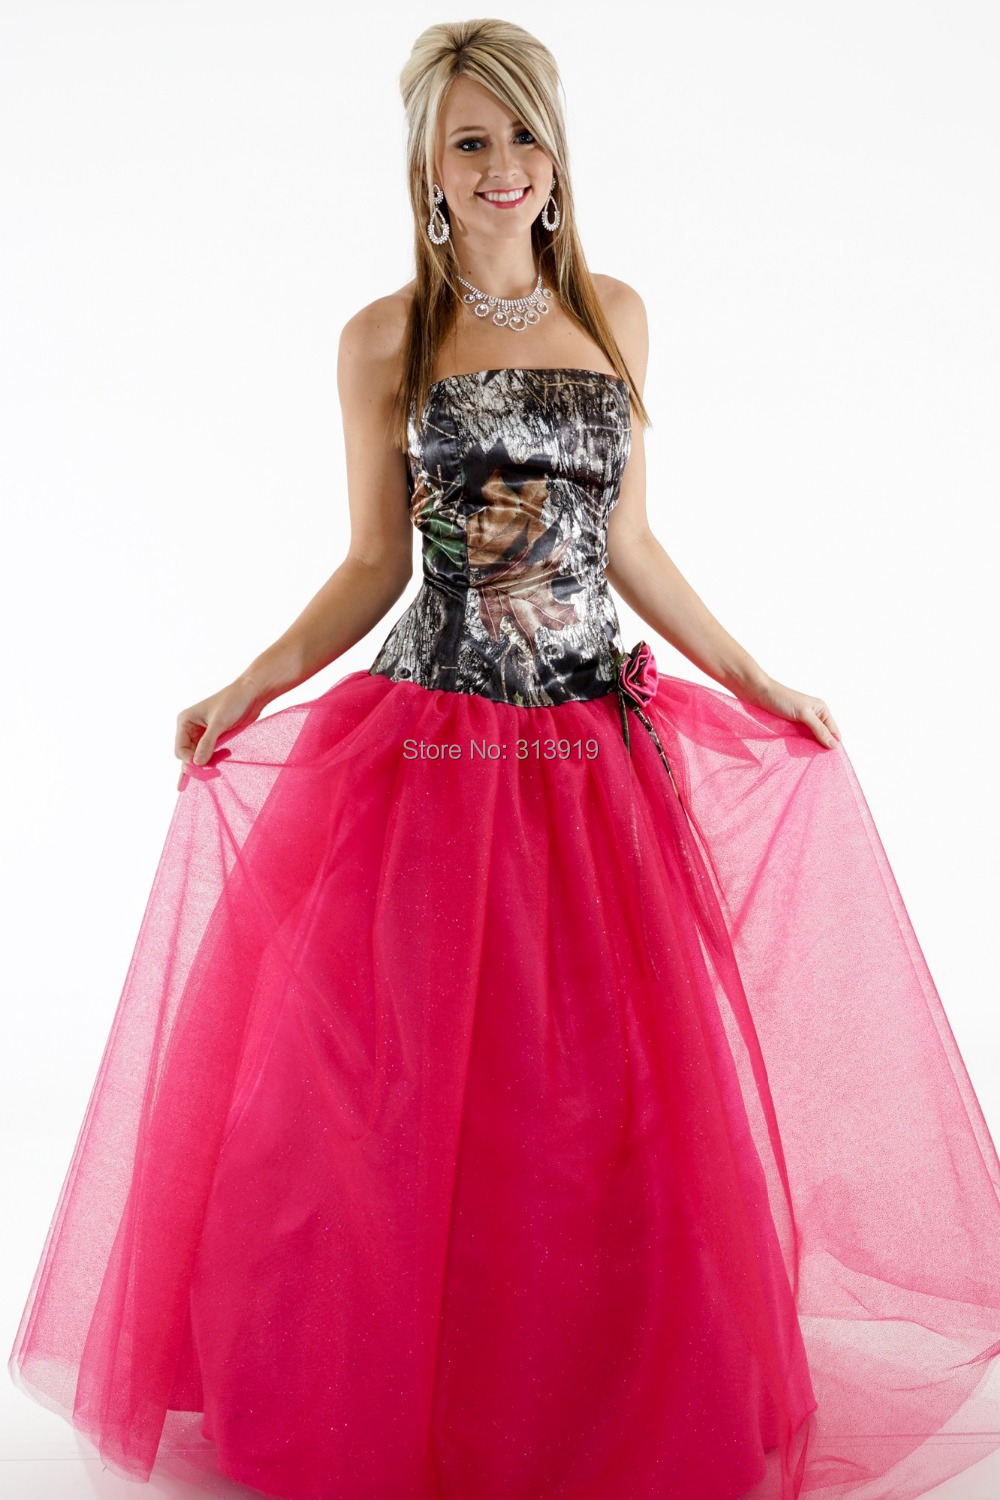 Popular Camouflage Prom Dresses-Buy Cheap Camouflage Prom Dresses ...